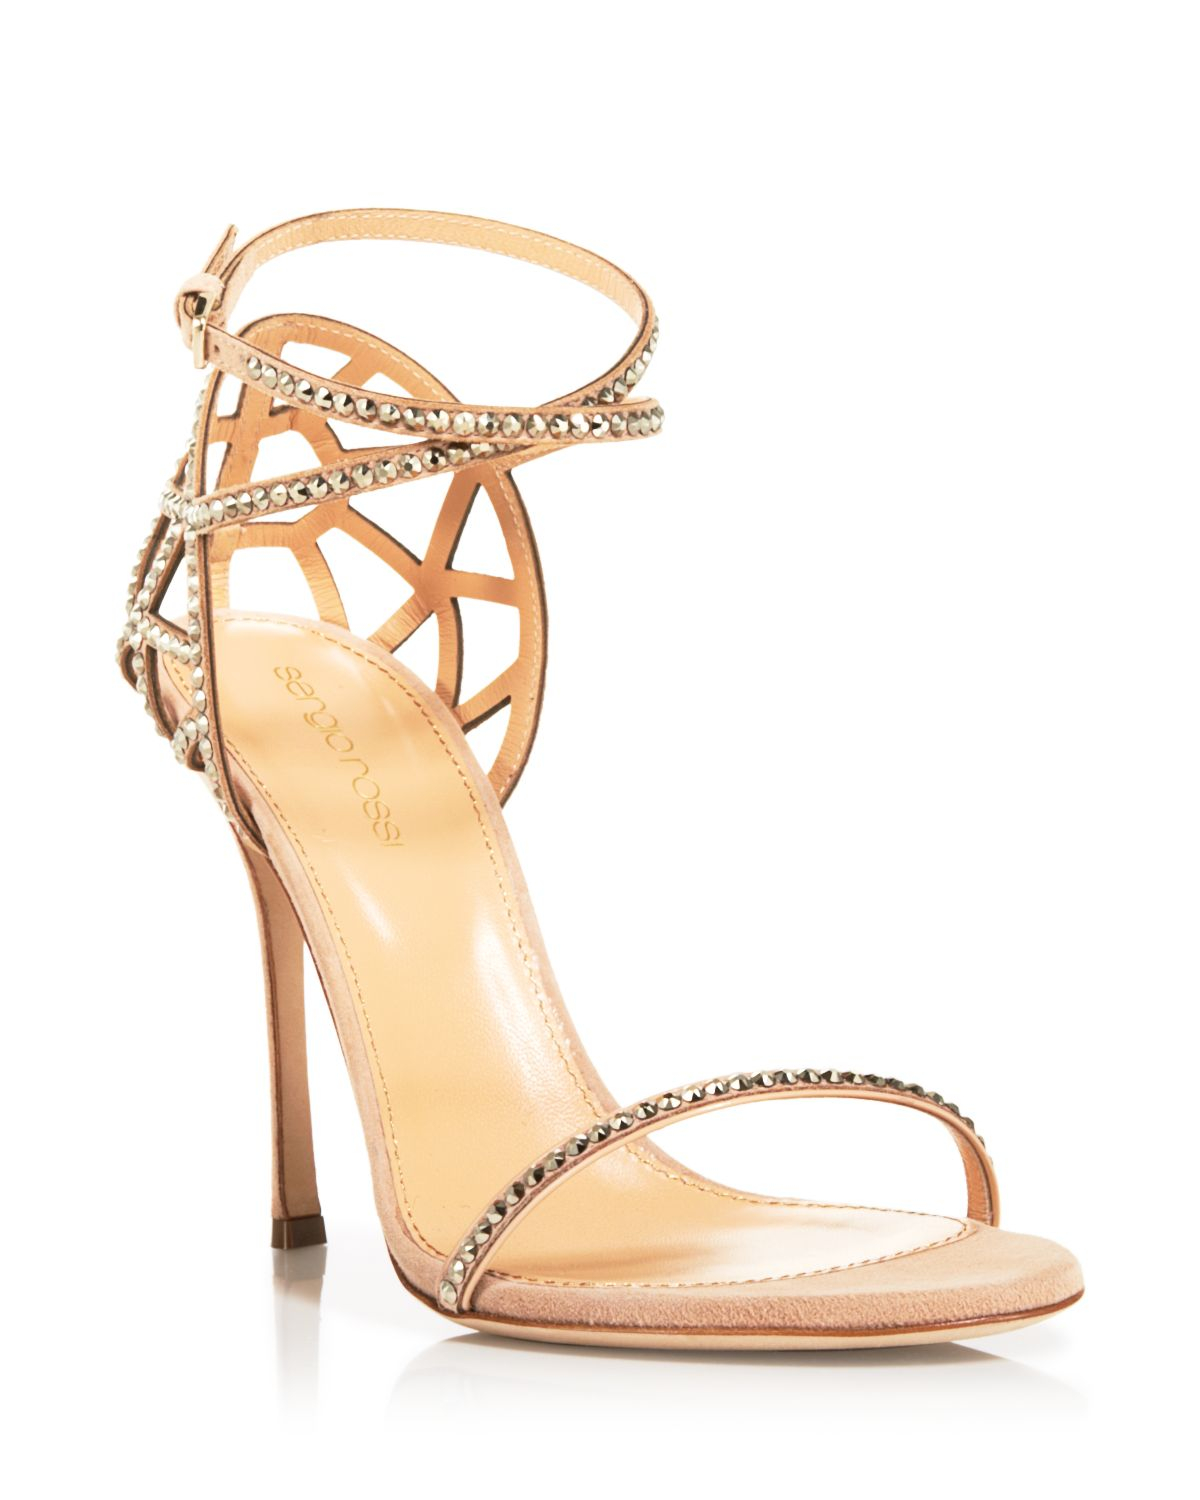 Gold Strappy High Heels - Qu Heel